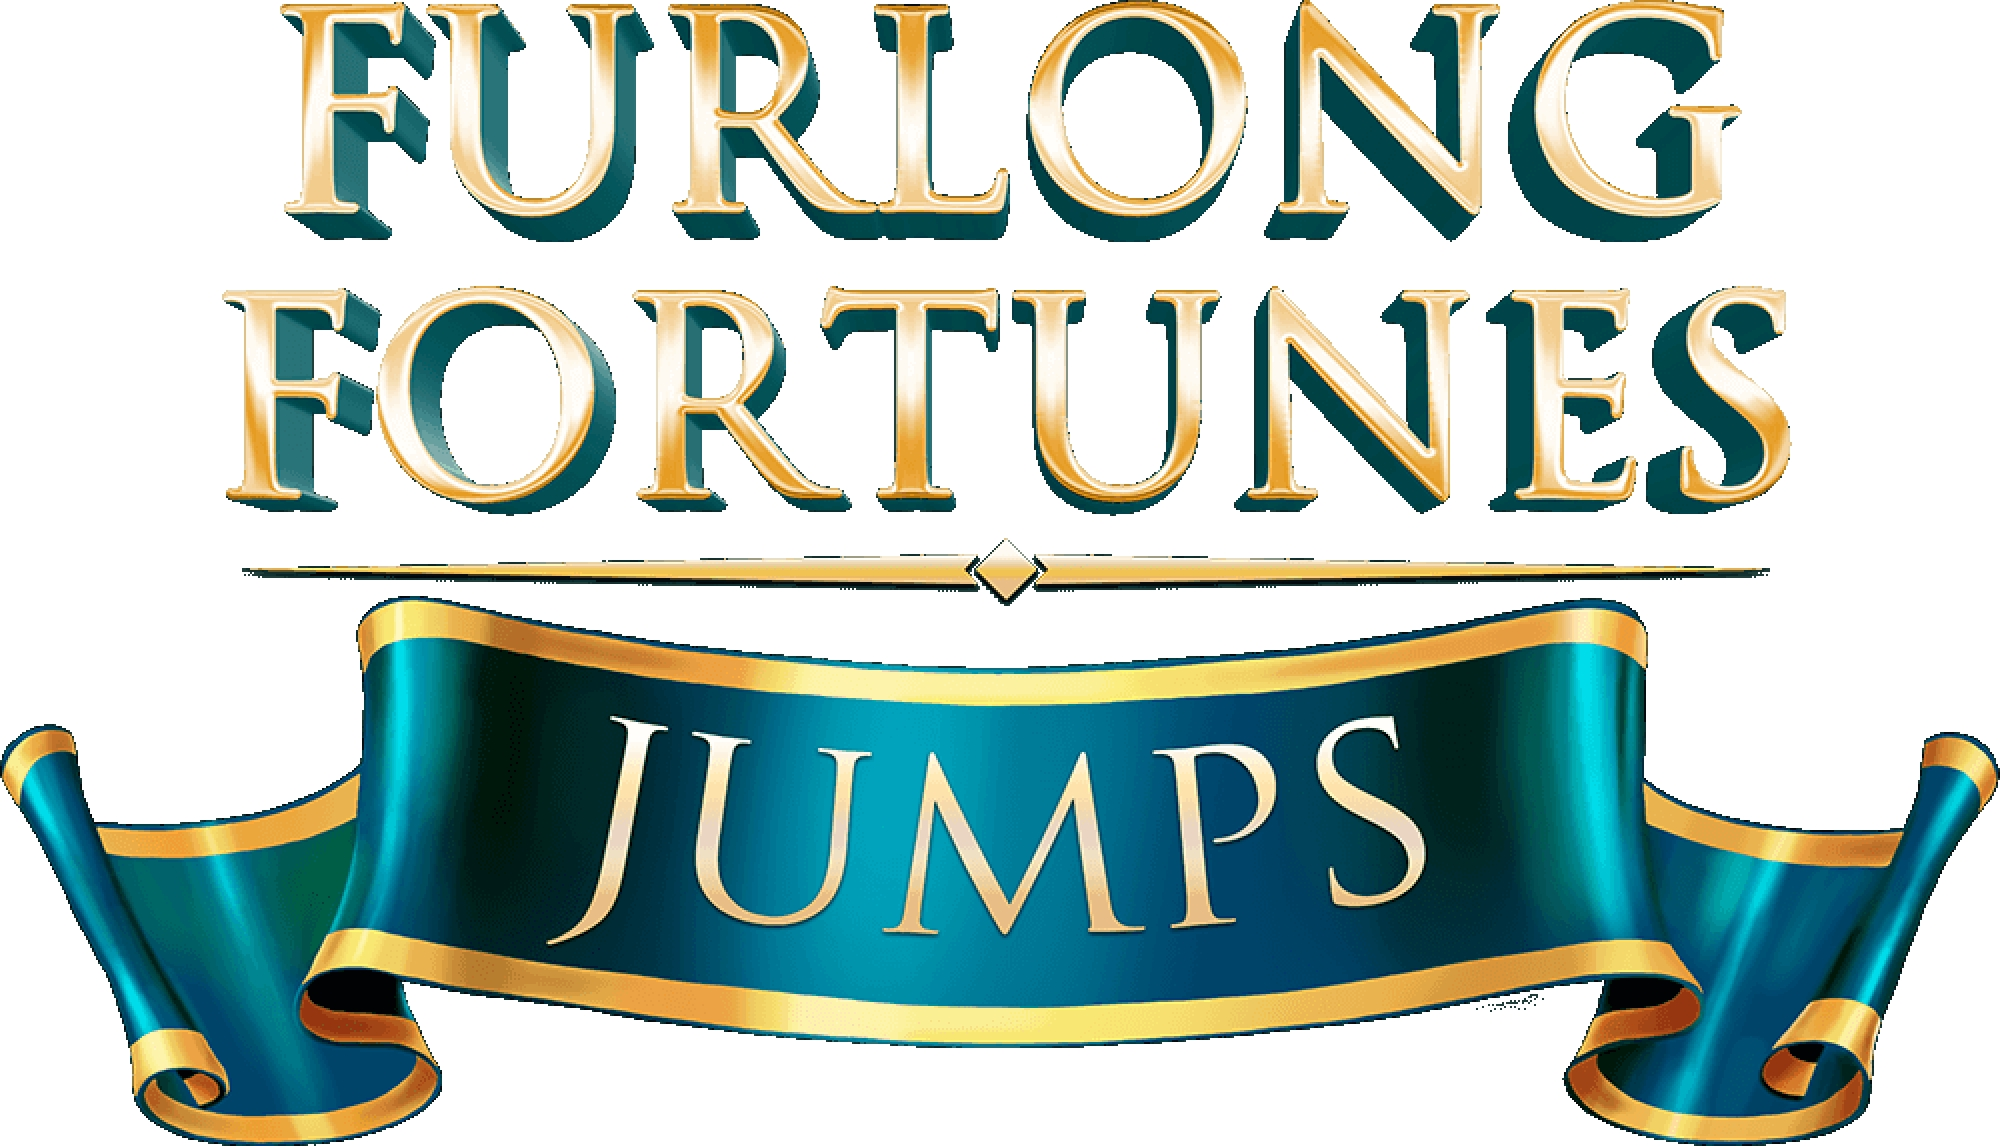 The Furlong Fortunes Jumps Online Slot Demo Game by Inspired Gaming